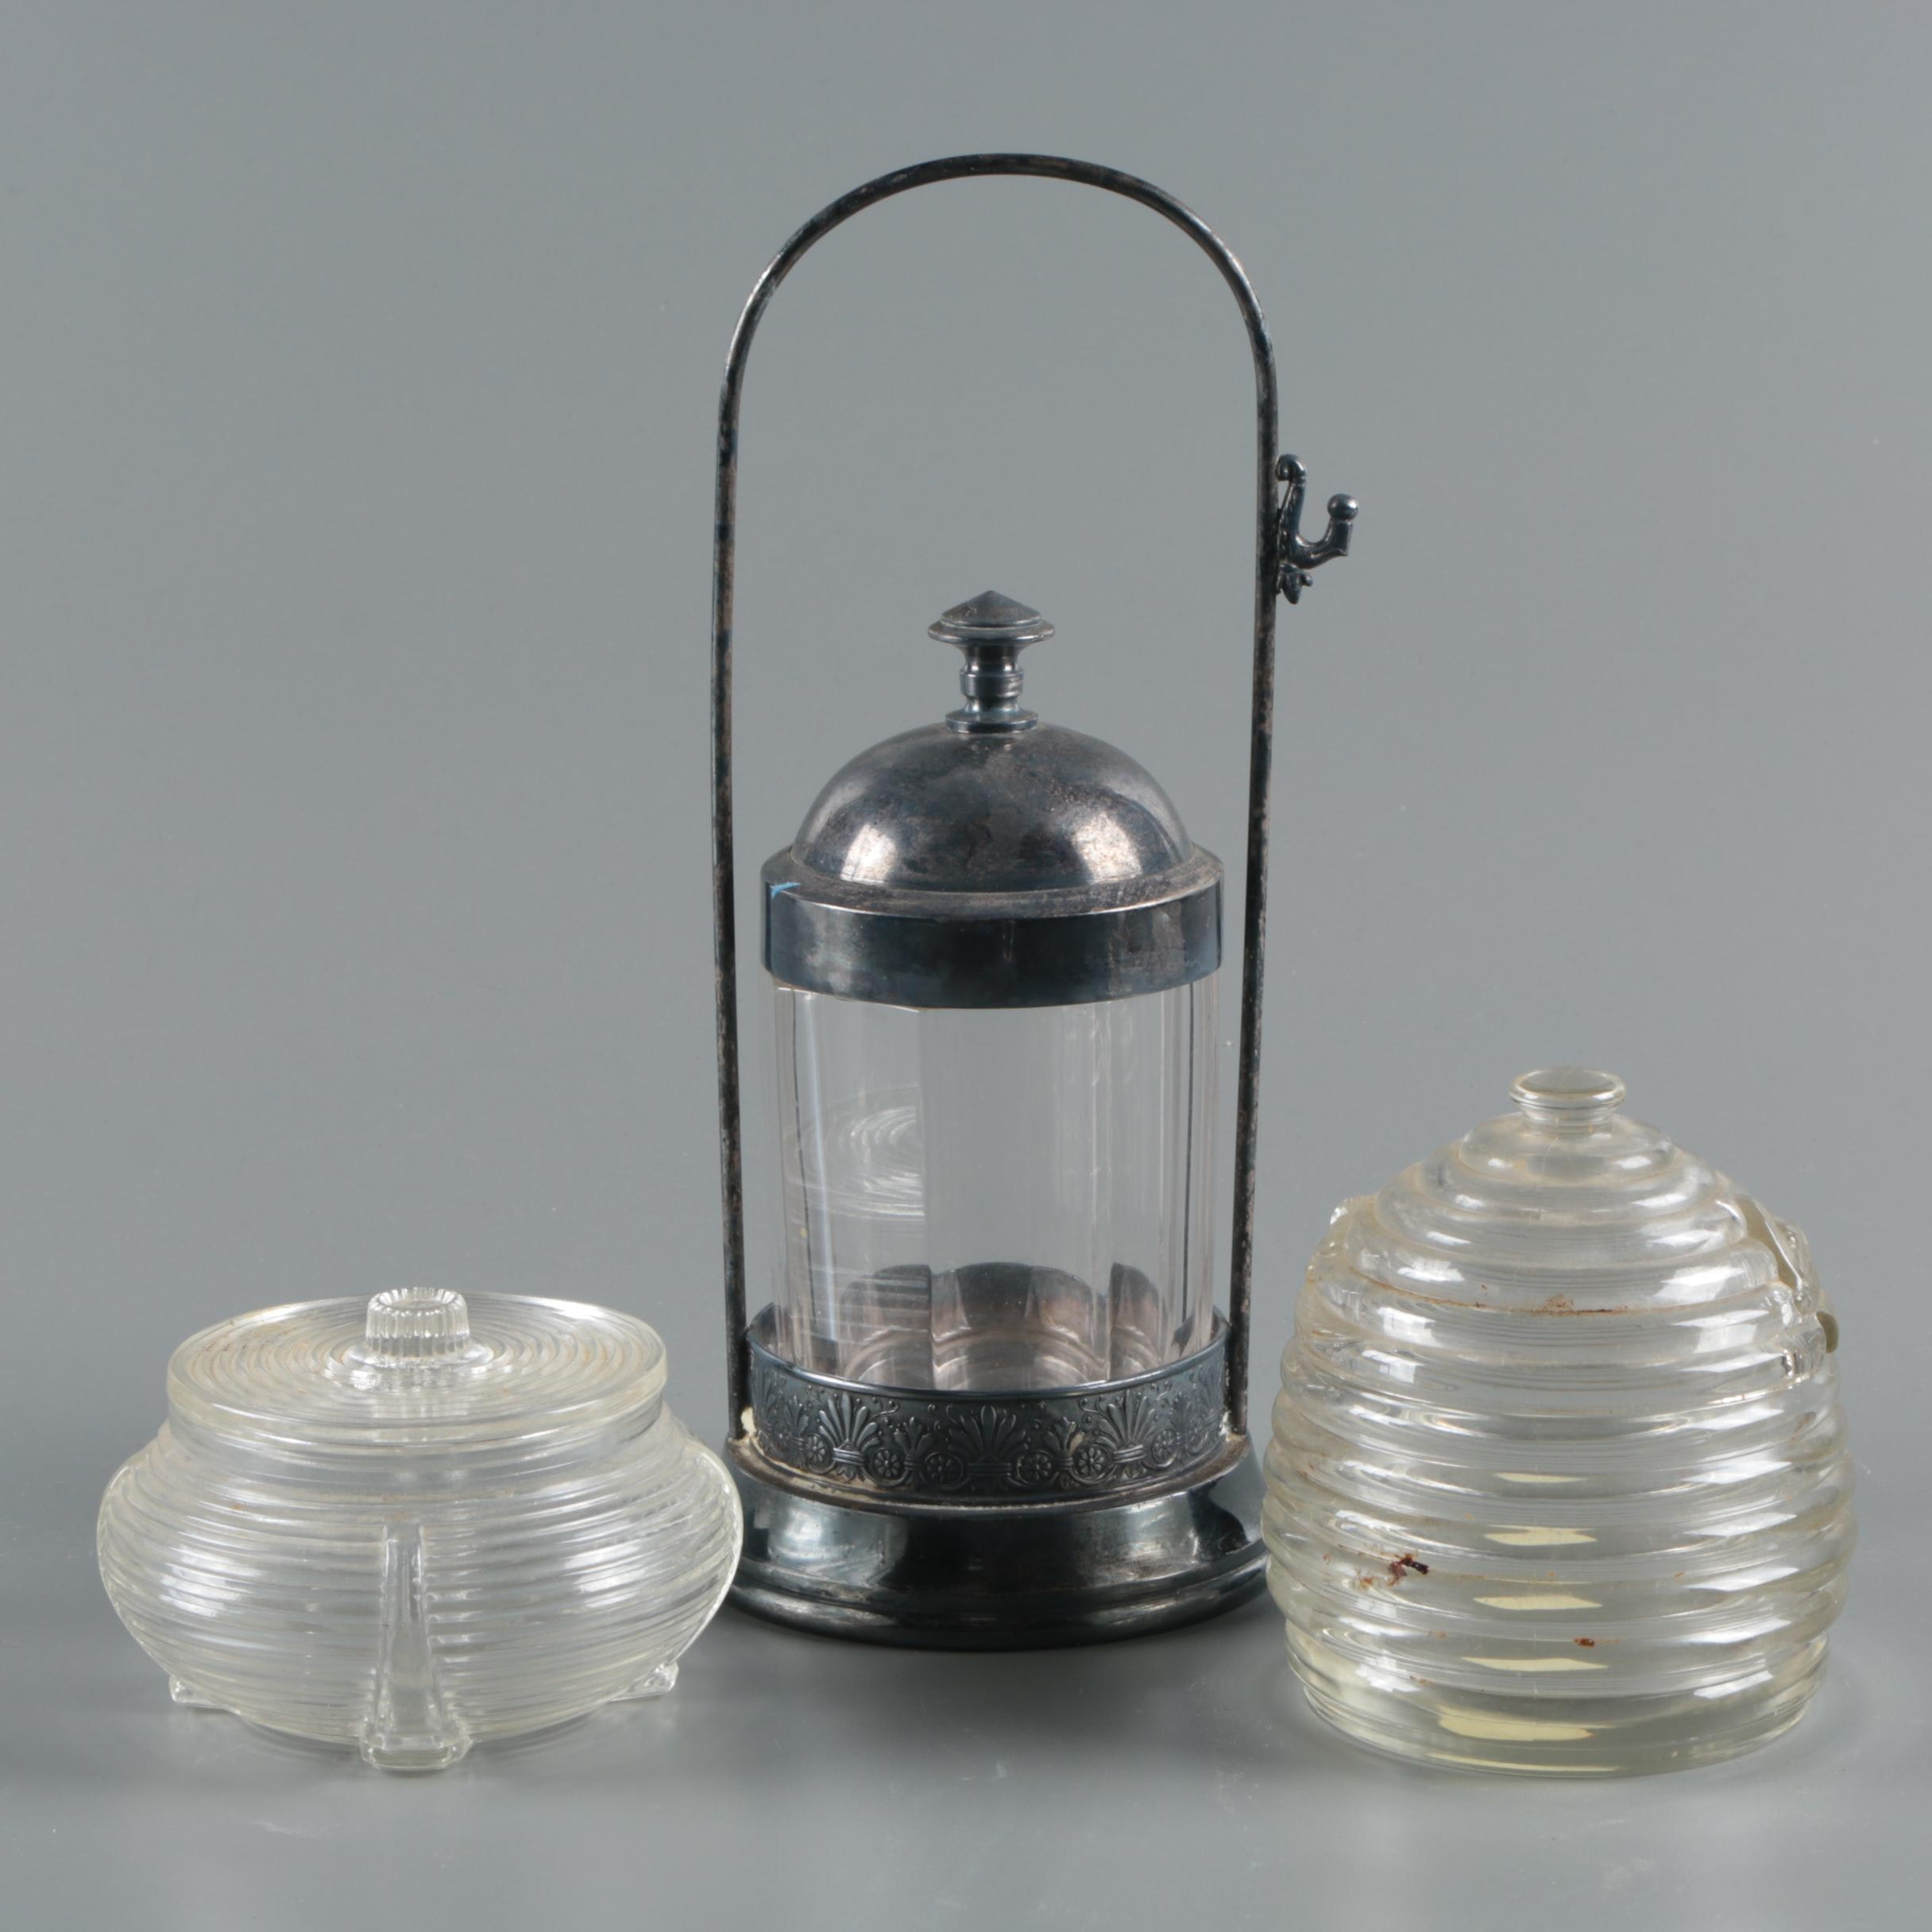 Vintage Metal and Glass Pickle Castor with Glass Honey Jars